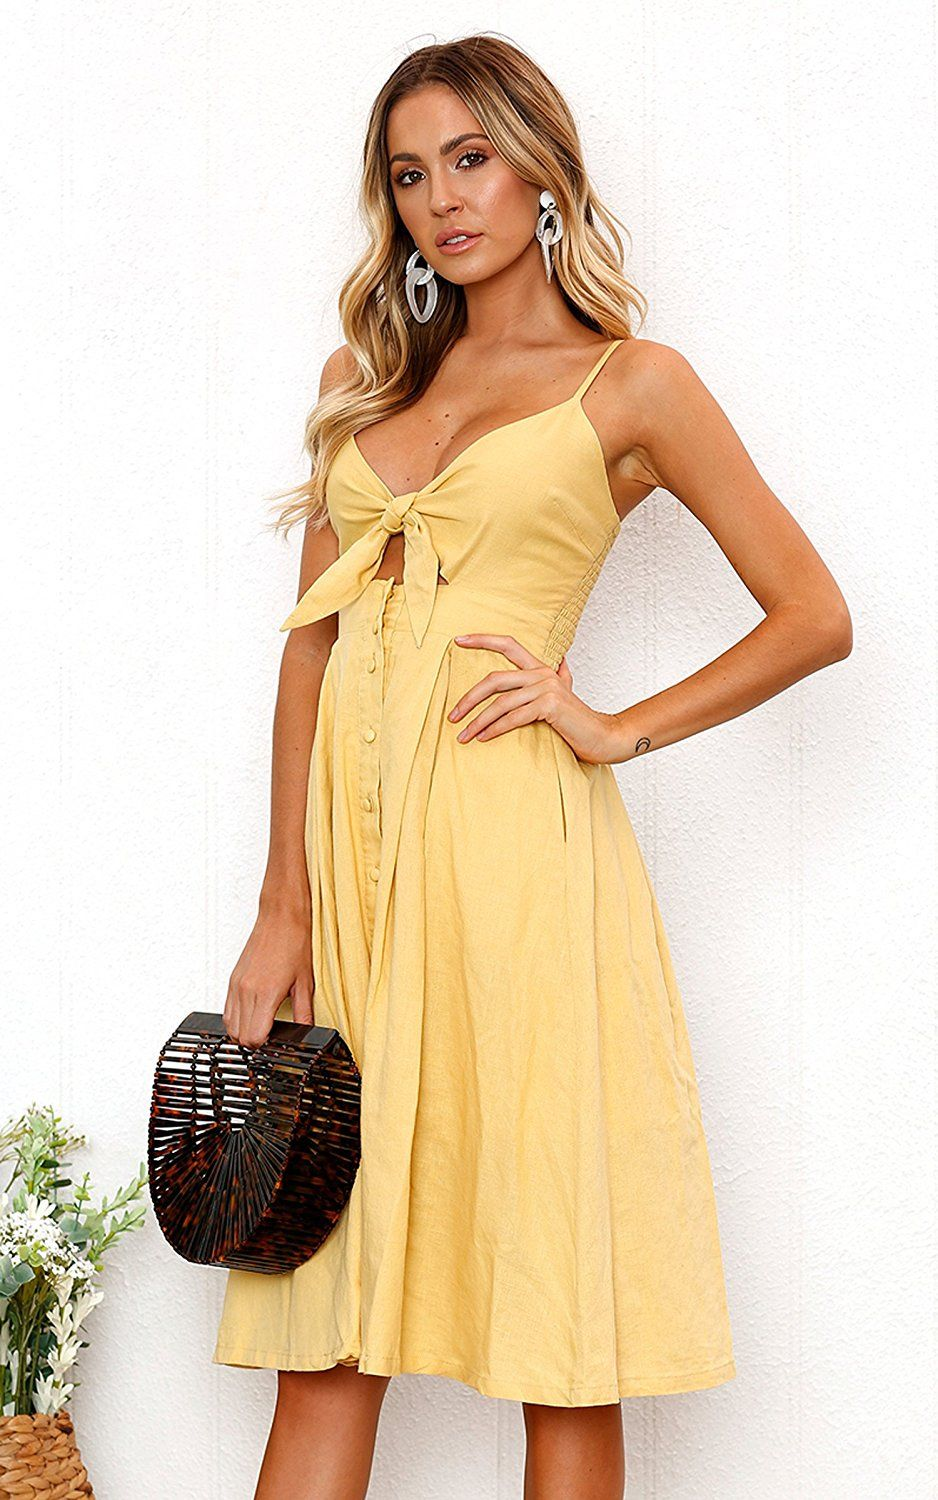 cc7e4c90a79 Ecowish Womens Dresses Summer Tie Front V-Neck Spaghetti Strap Button Down  A-Line Backless Swing Midi Dress